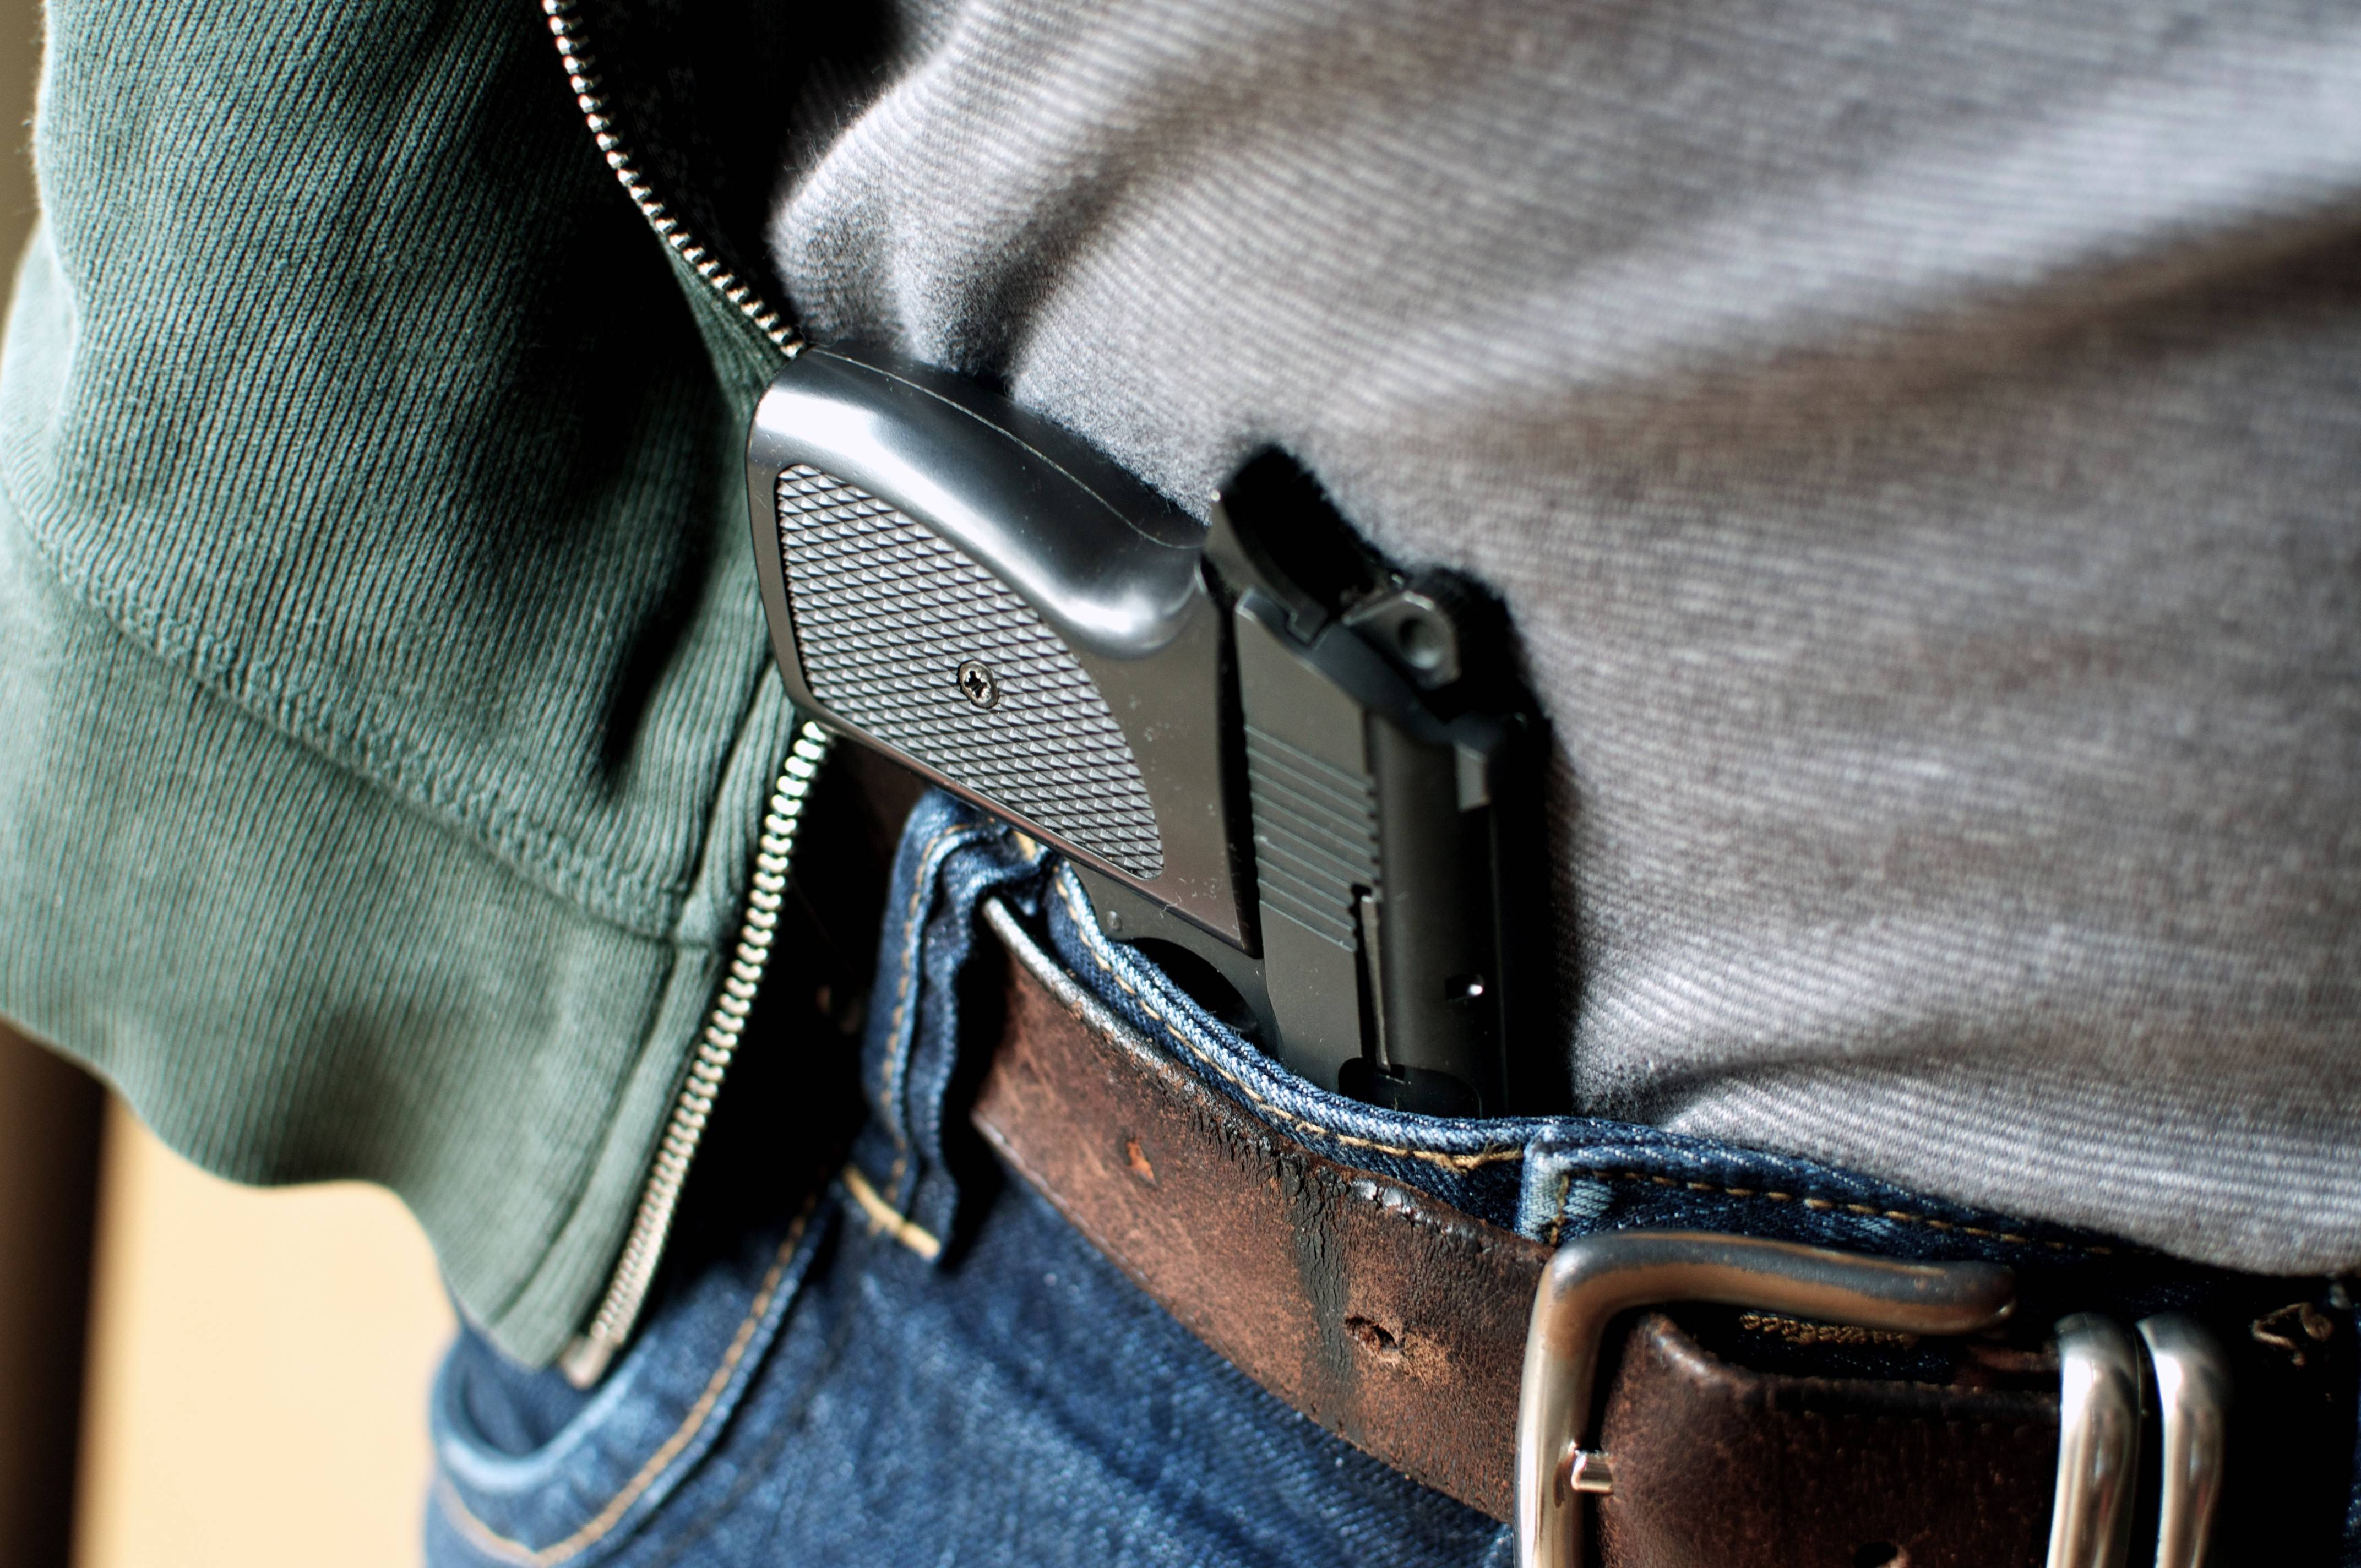 The Illinois State Police say Illinois' first concealed carry permits could be issued next week.